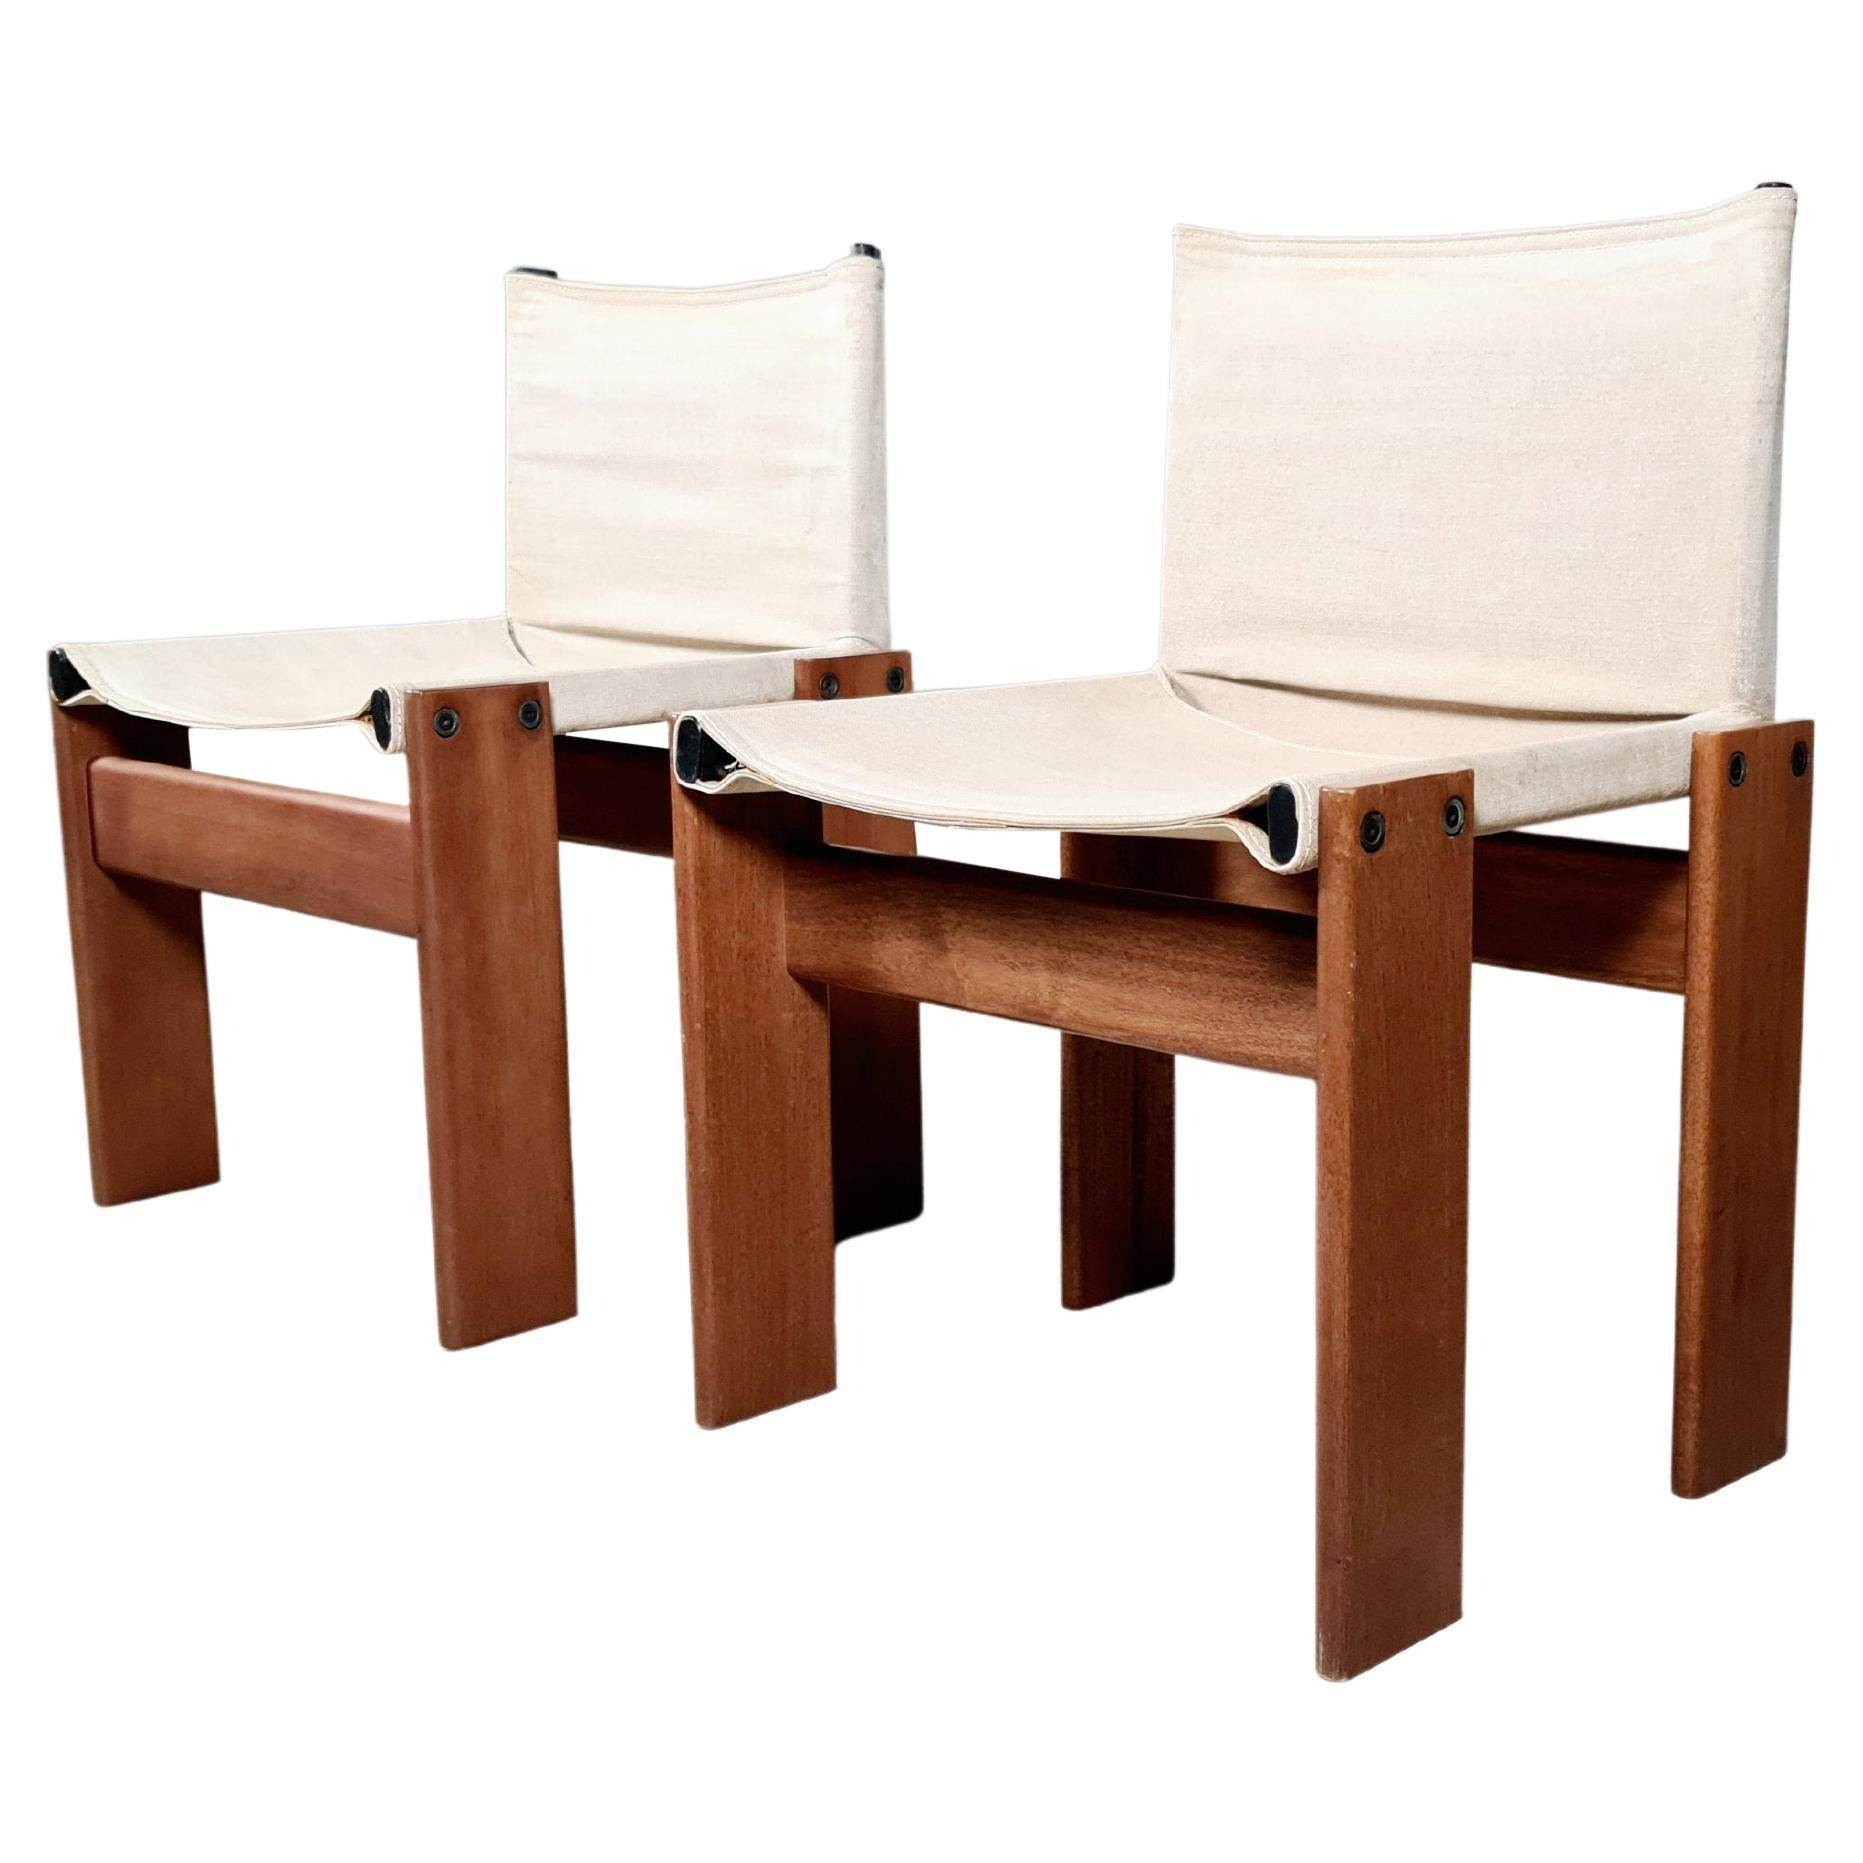 Afra & Tobia Scarpa Set of 2 'Monk' Dining Chairs in Canvas, 1970s